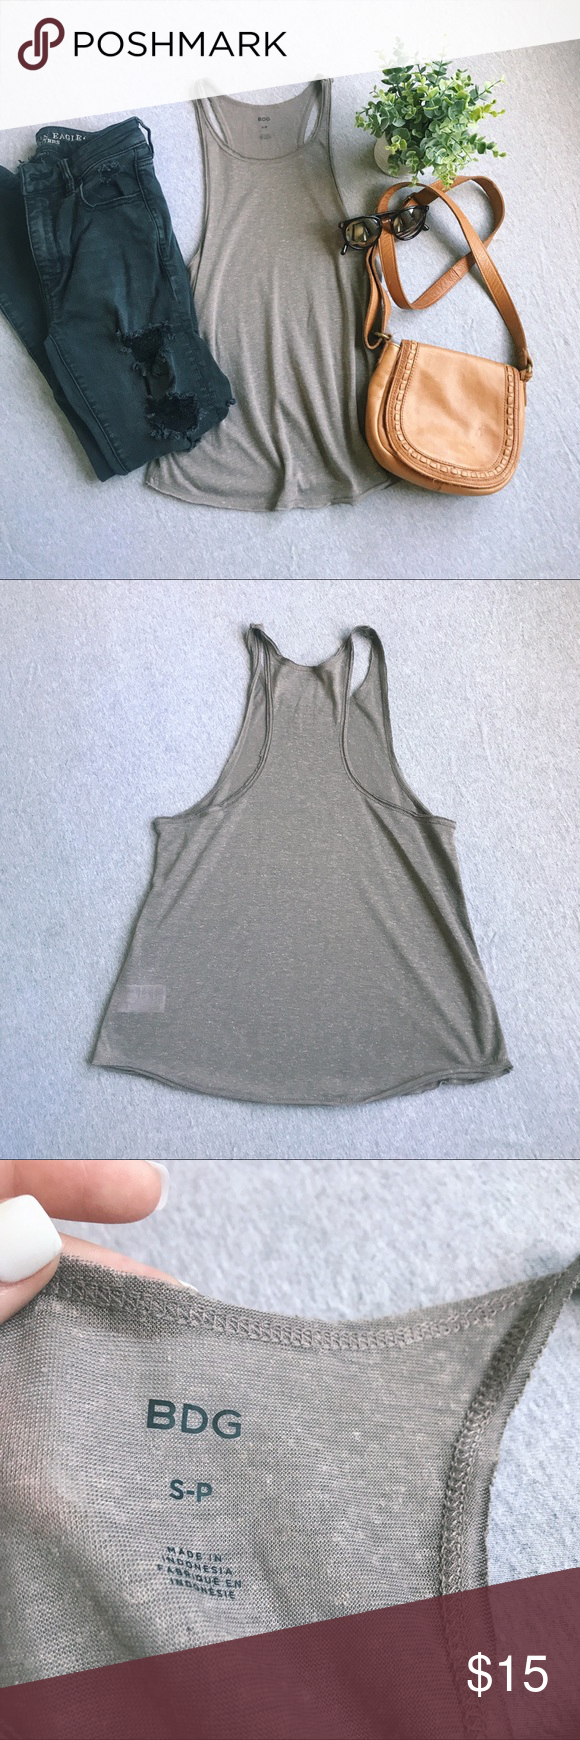 Urban Renewal (UO) Tank Top   Tops, Urban outfitters tops